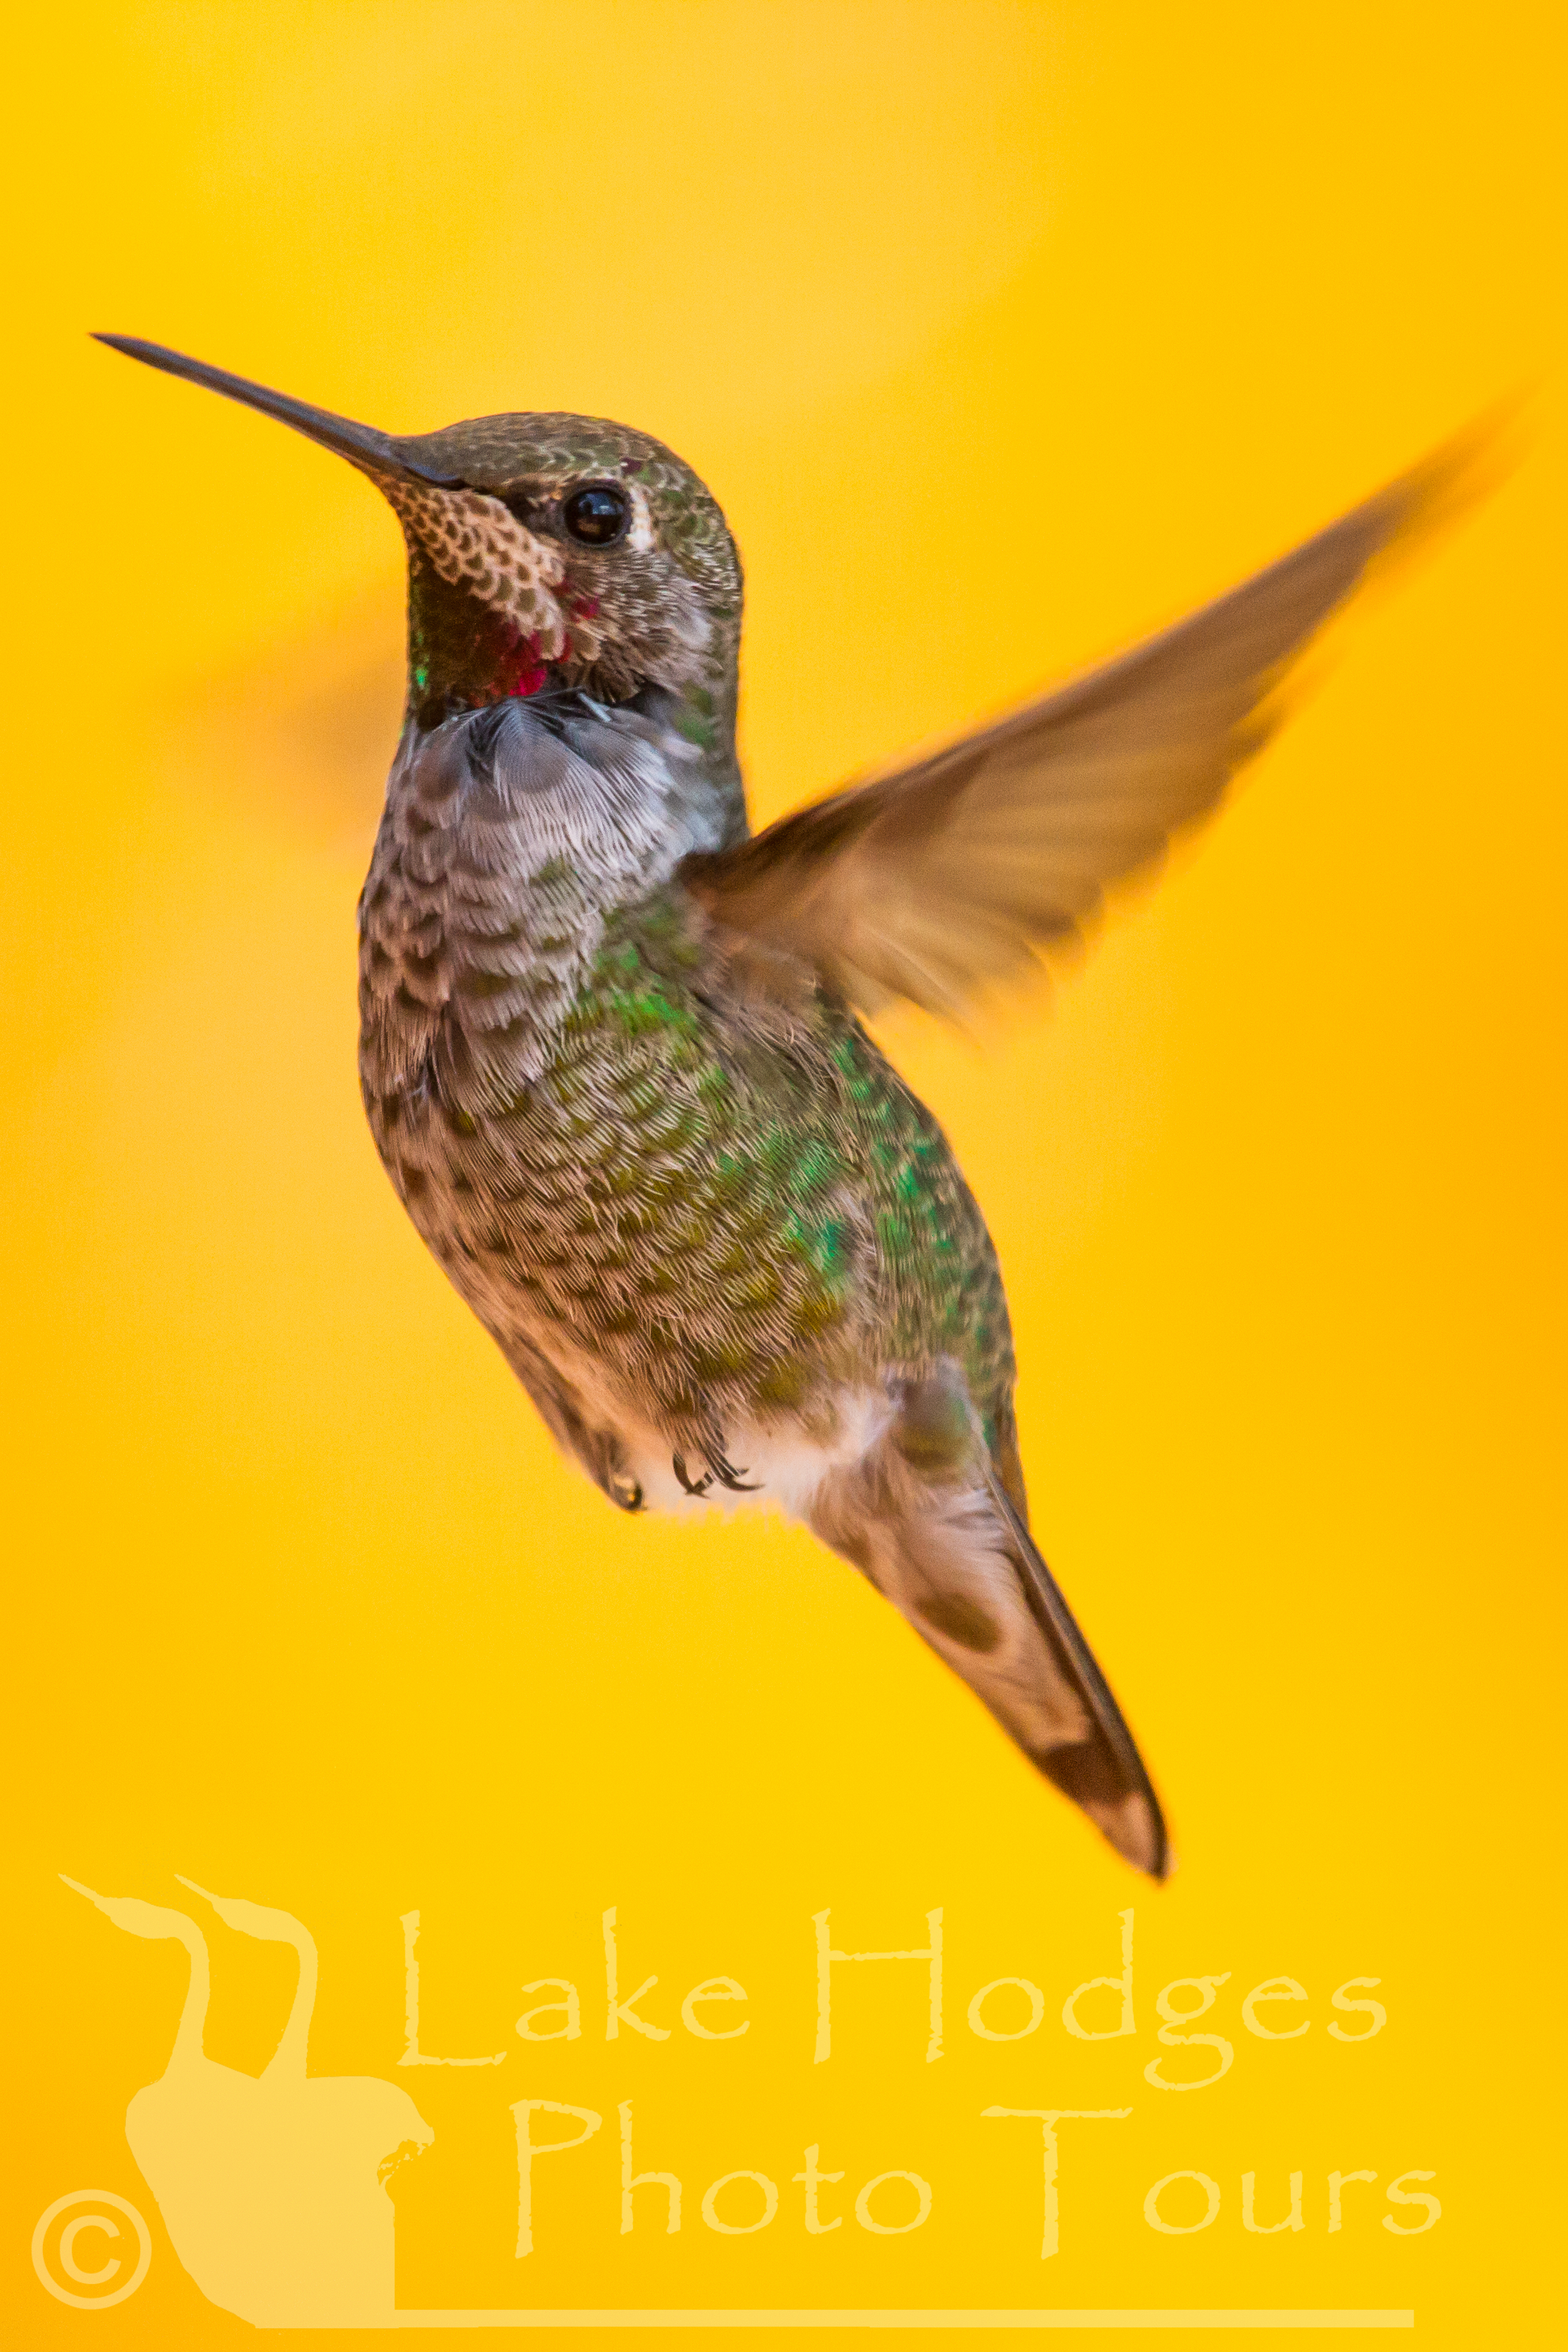 Anna's Hummingbird at Lake Hodges Photo Tours, CA, USA